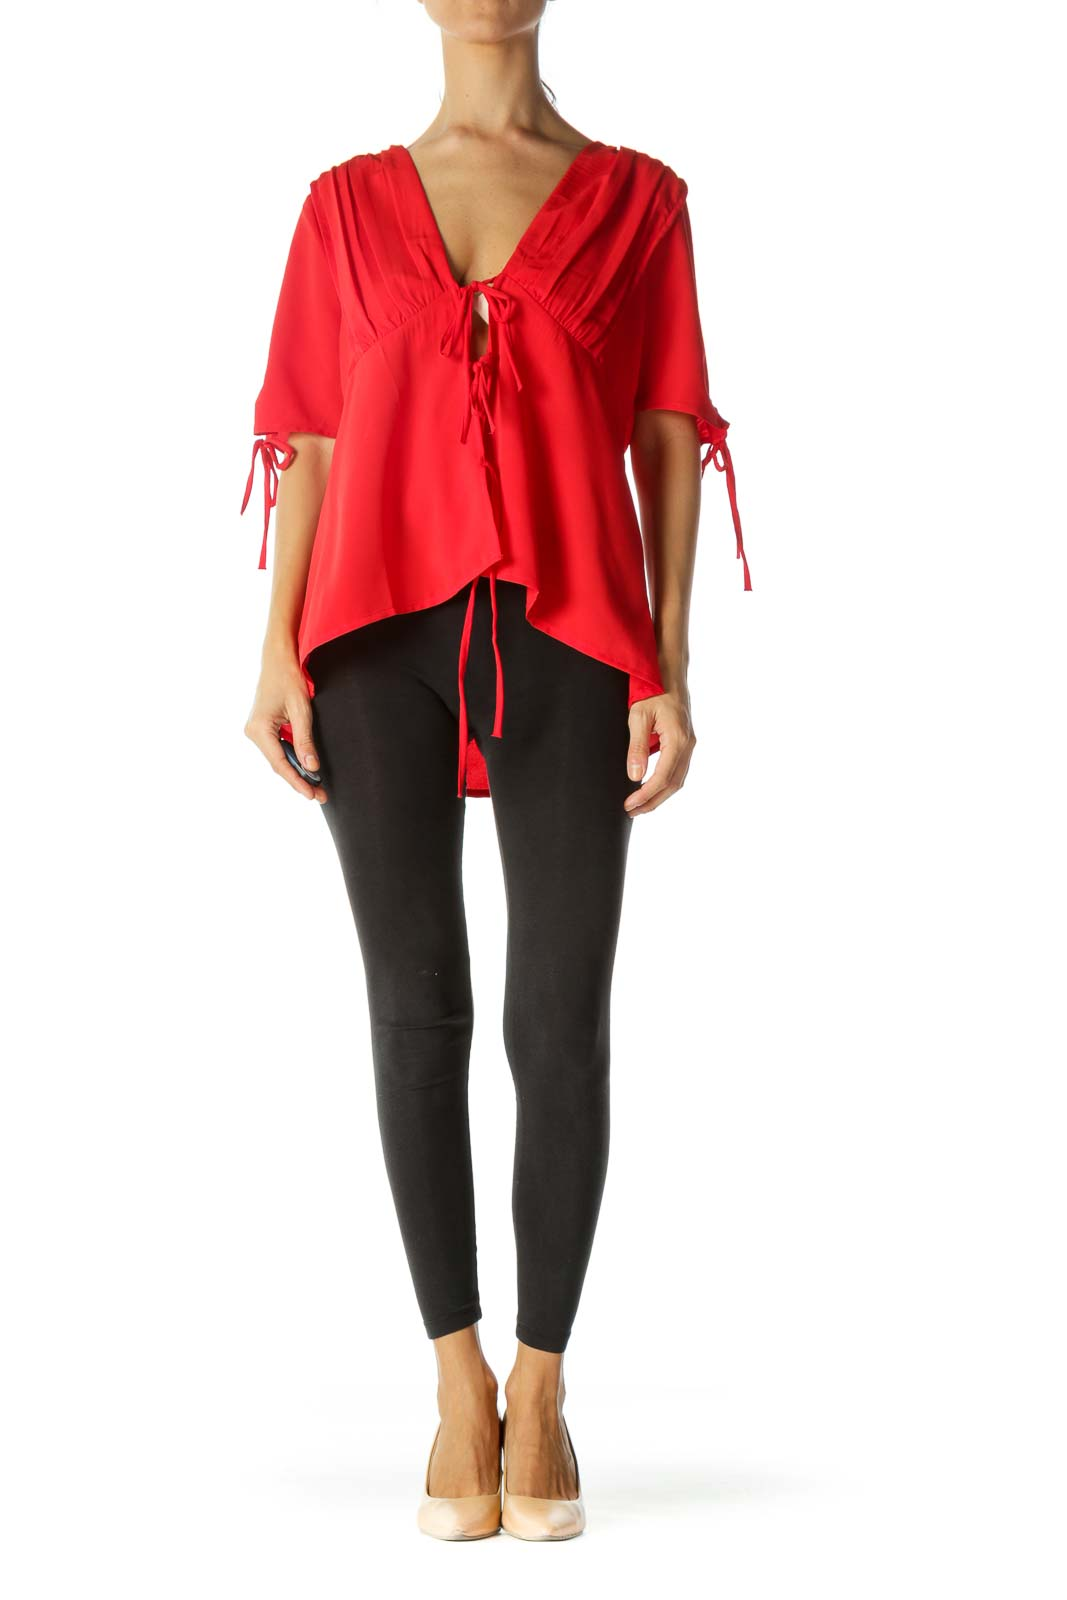 Warm Red Front Knot Details Pleated Short Sleeve Top